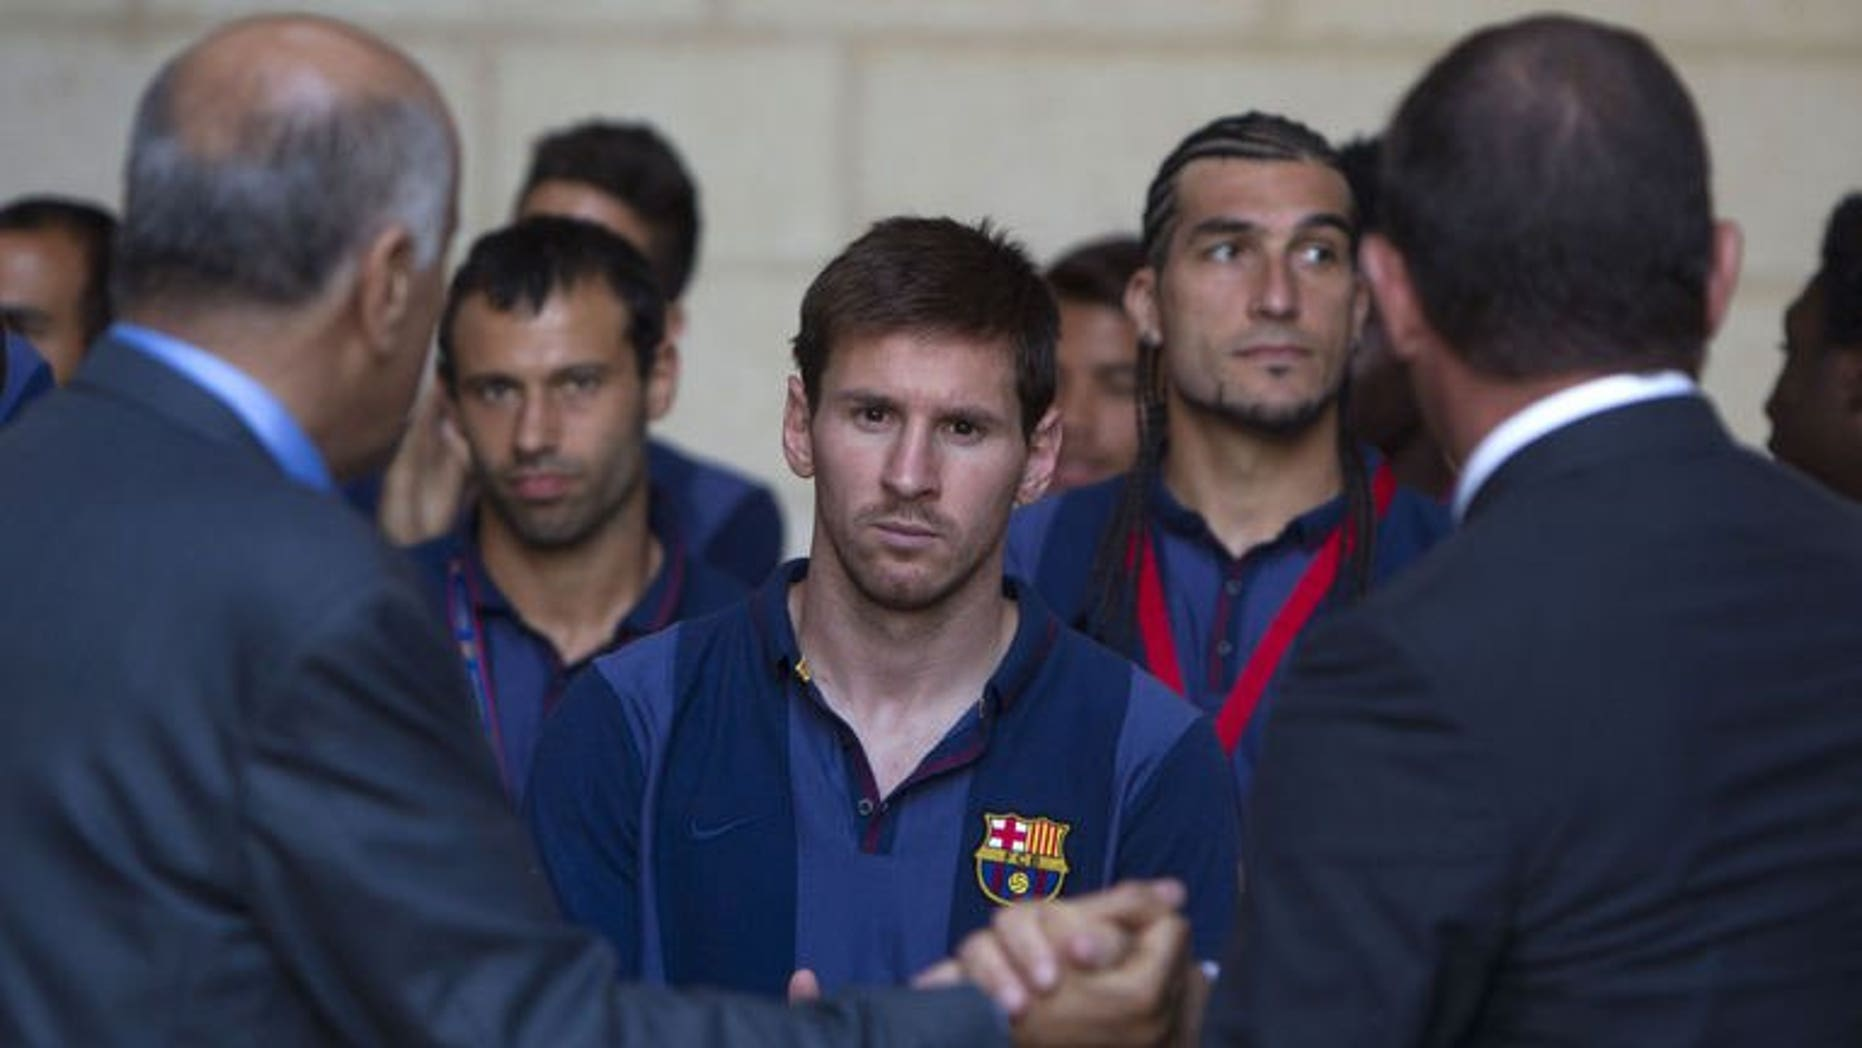 President of FC Barcelona Sandro Rosell (R) and president of the Palestinian Olympic Committee Jibril Rajub (L) shake hands in front of Argentinian forward Lionel Messi (C) at a joint news conference in the West Bank Biblical town of Bethlehem on August 3, 2013.